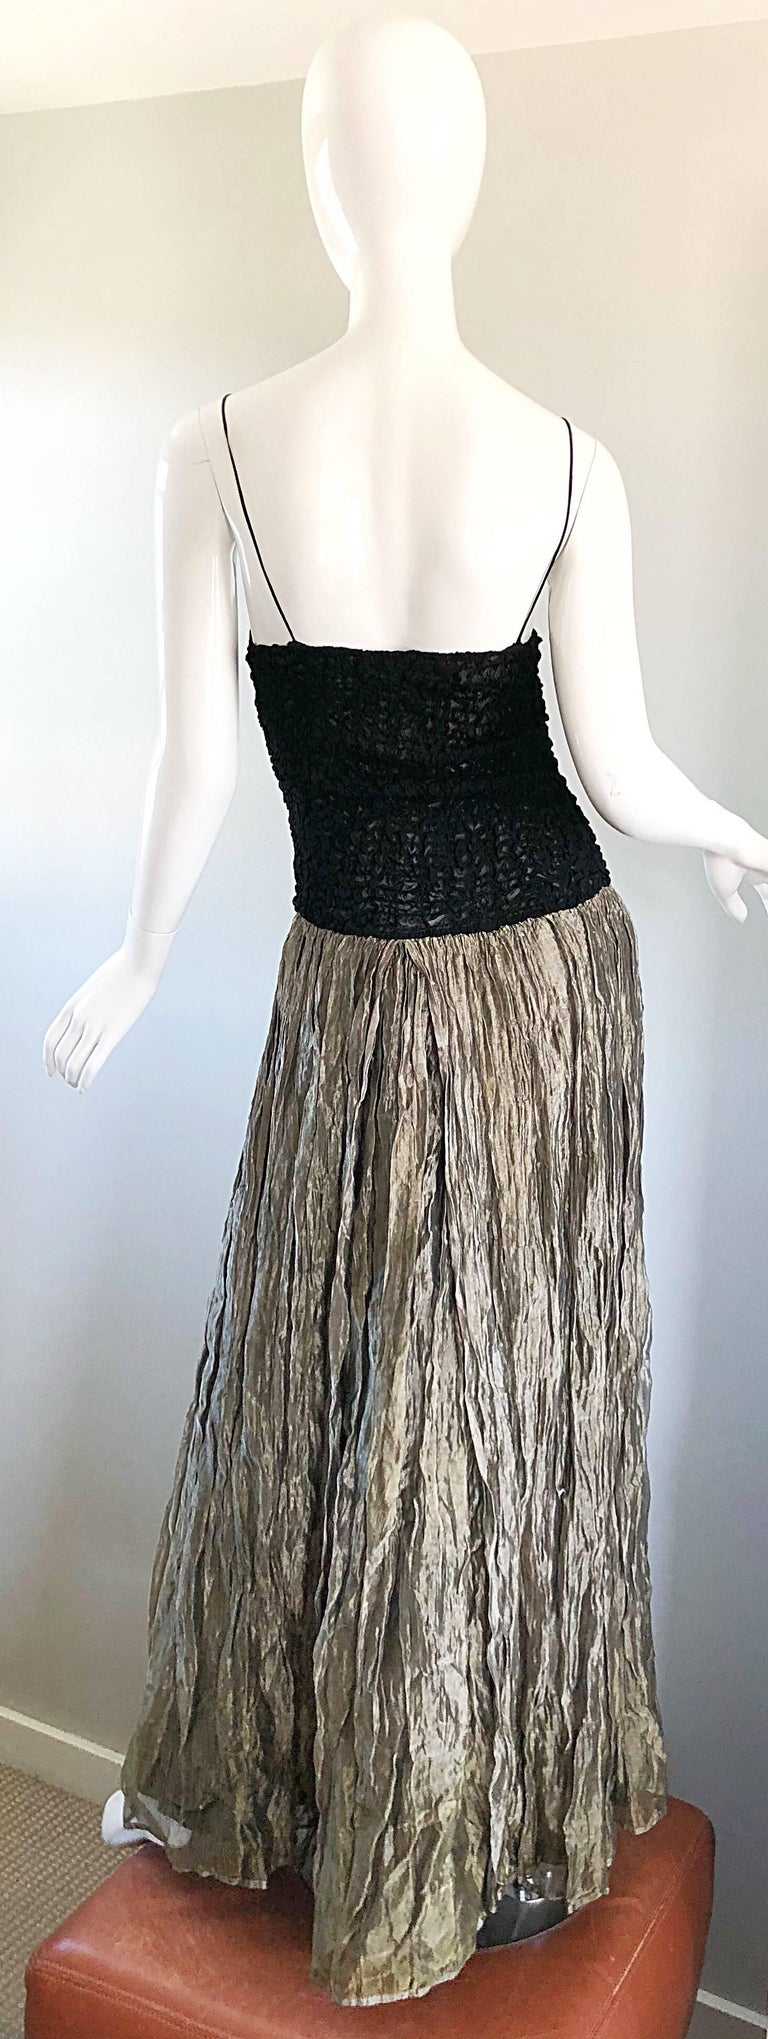 Vintage Morgane Le Fay 1990s Black + Gold Metallic Ombre 90s Evening Gown Dress In Good Condition In Chicago, IL